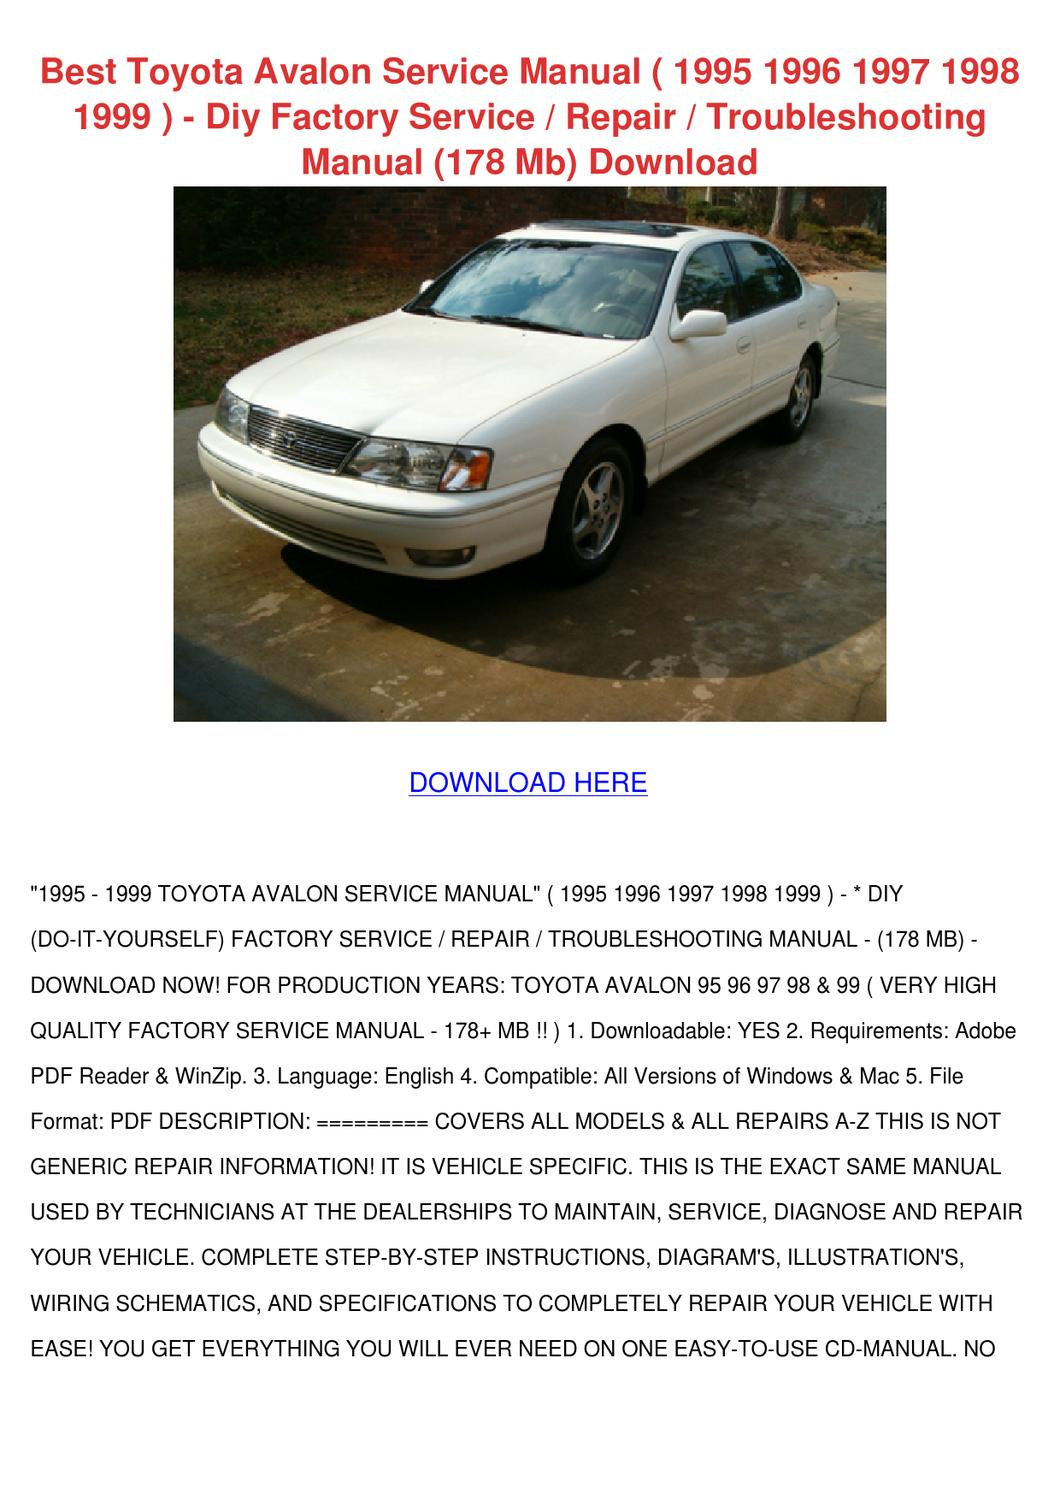 1998 toyota avalon repair manual